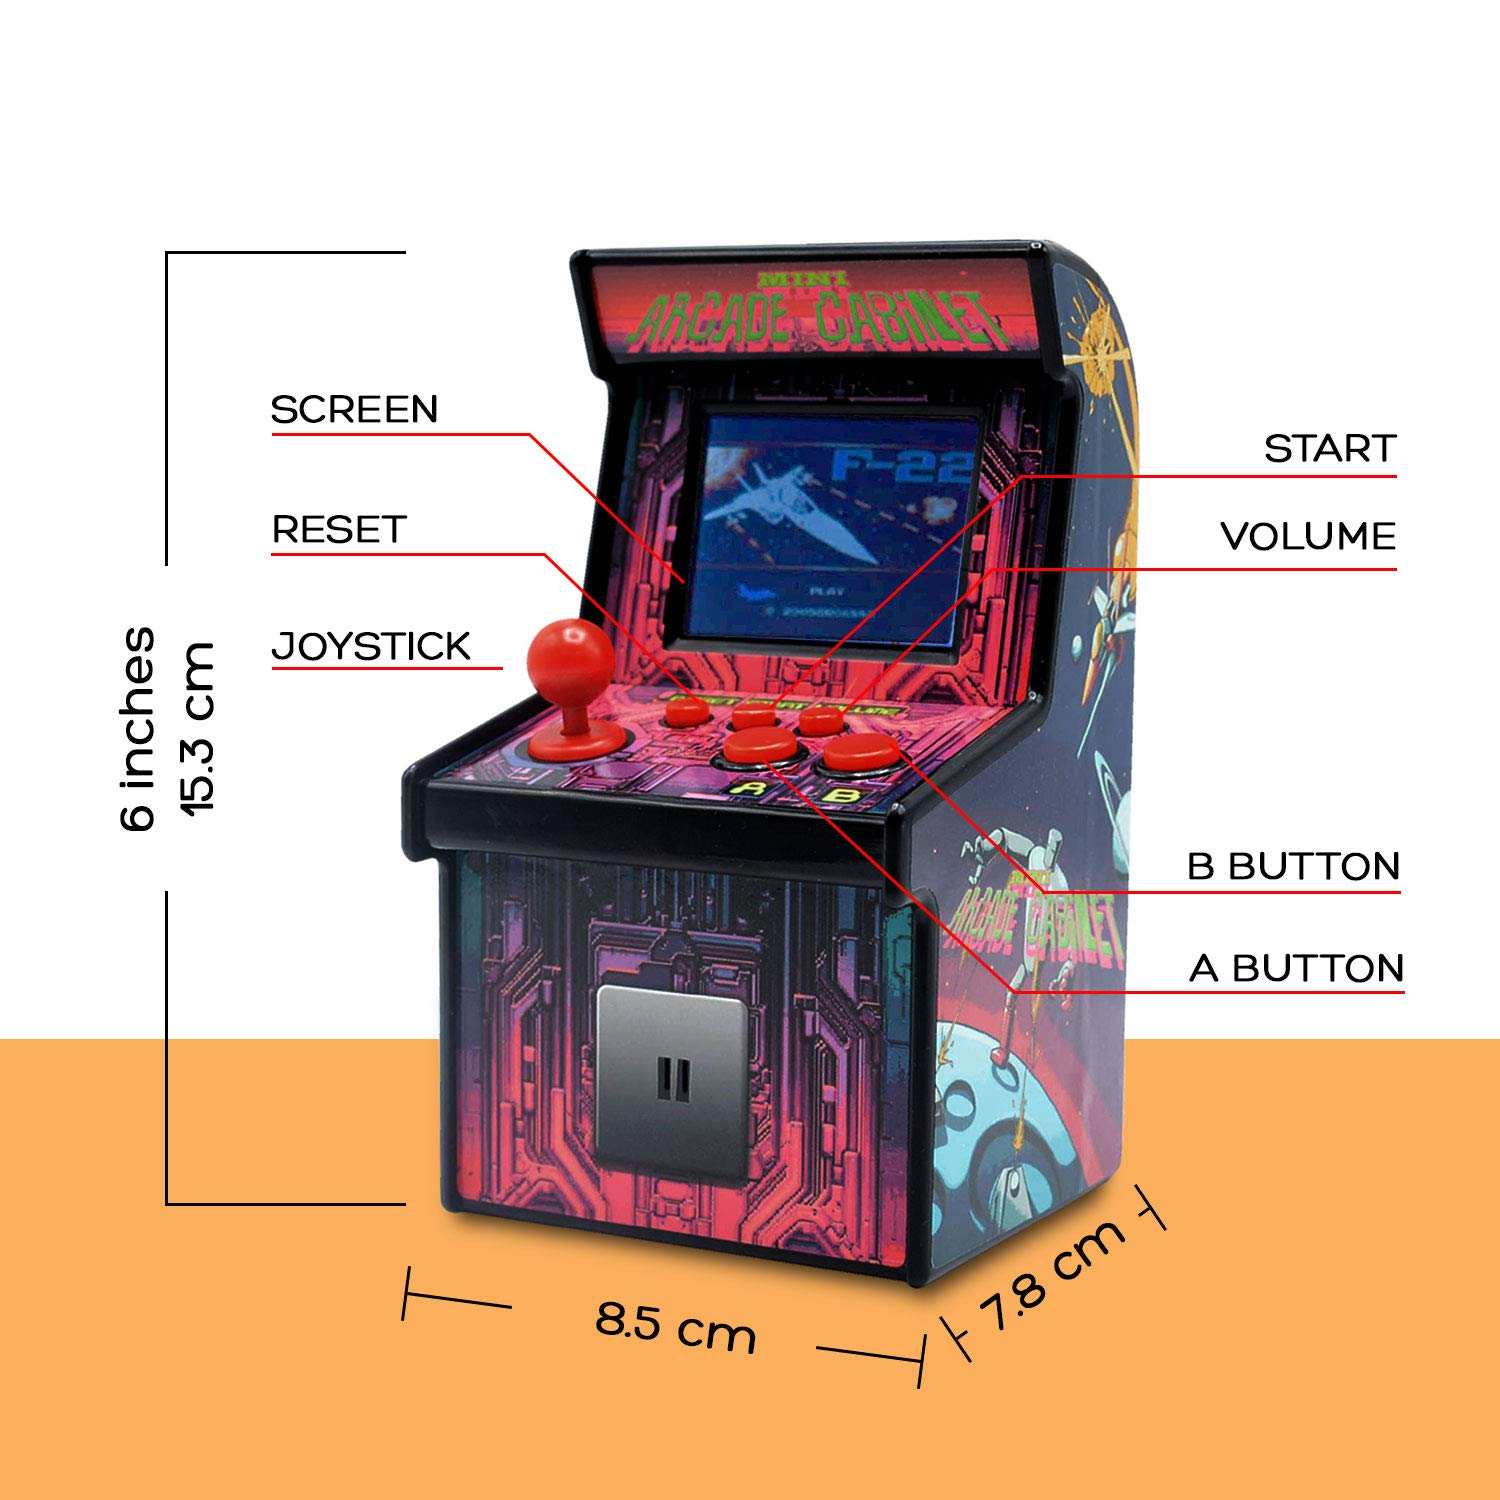 Funderdome Battery Powered Mini Arcade Game, Arcade Machine, Retro Tiny Video Game Arcade Cabinet, Portable Electronic Handheld Gaming Console for Kids with 200 Classic Video Games by Funderdome (Image #3)